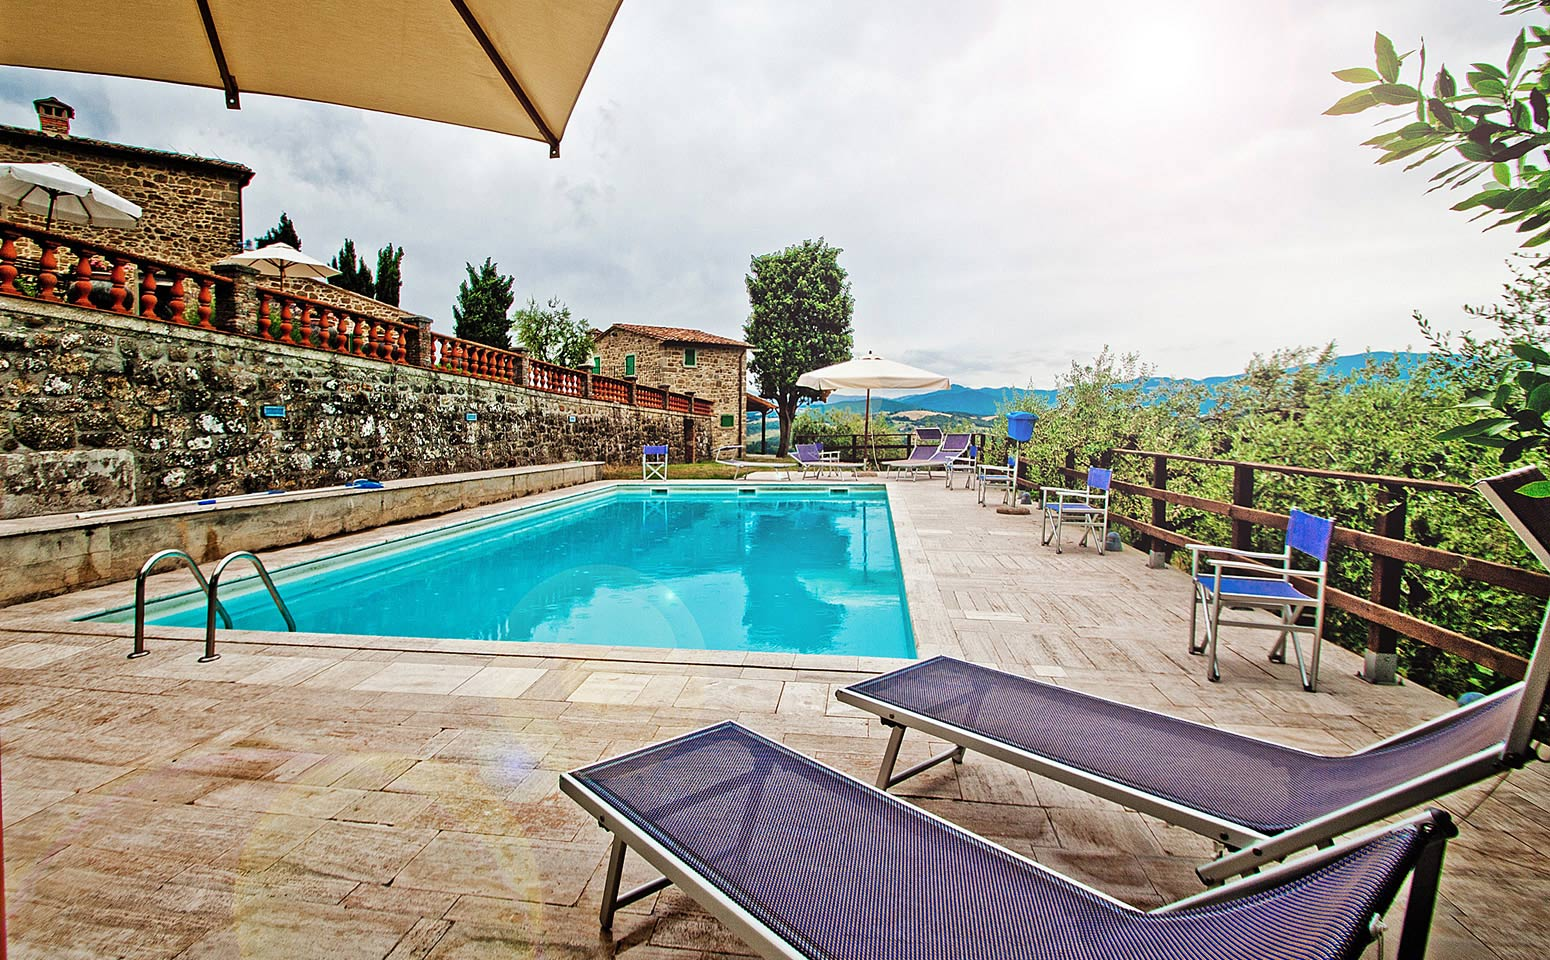 Vacanza in agriturismo in Toscana